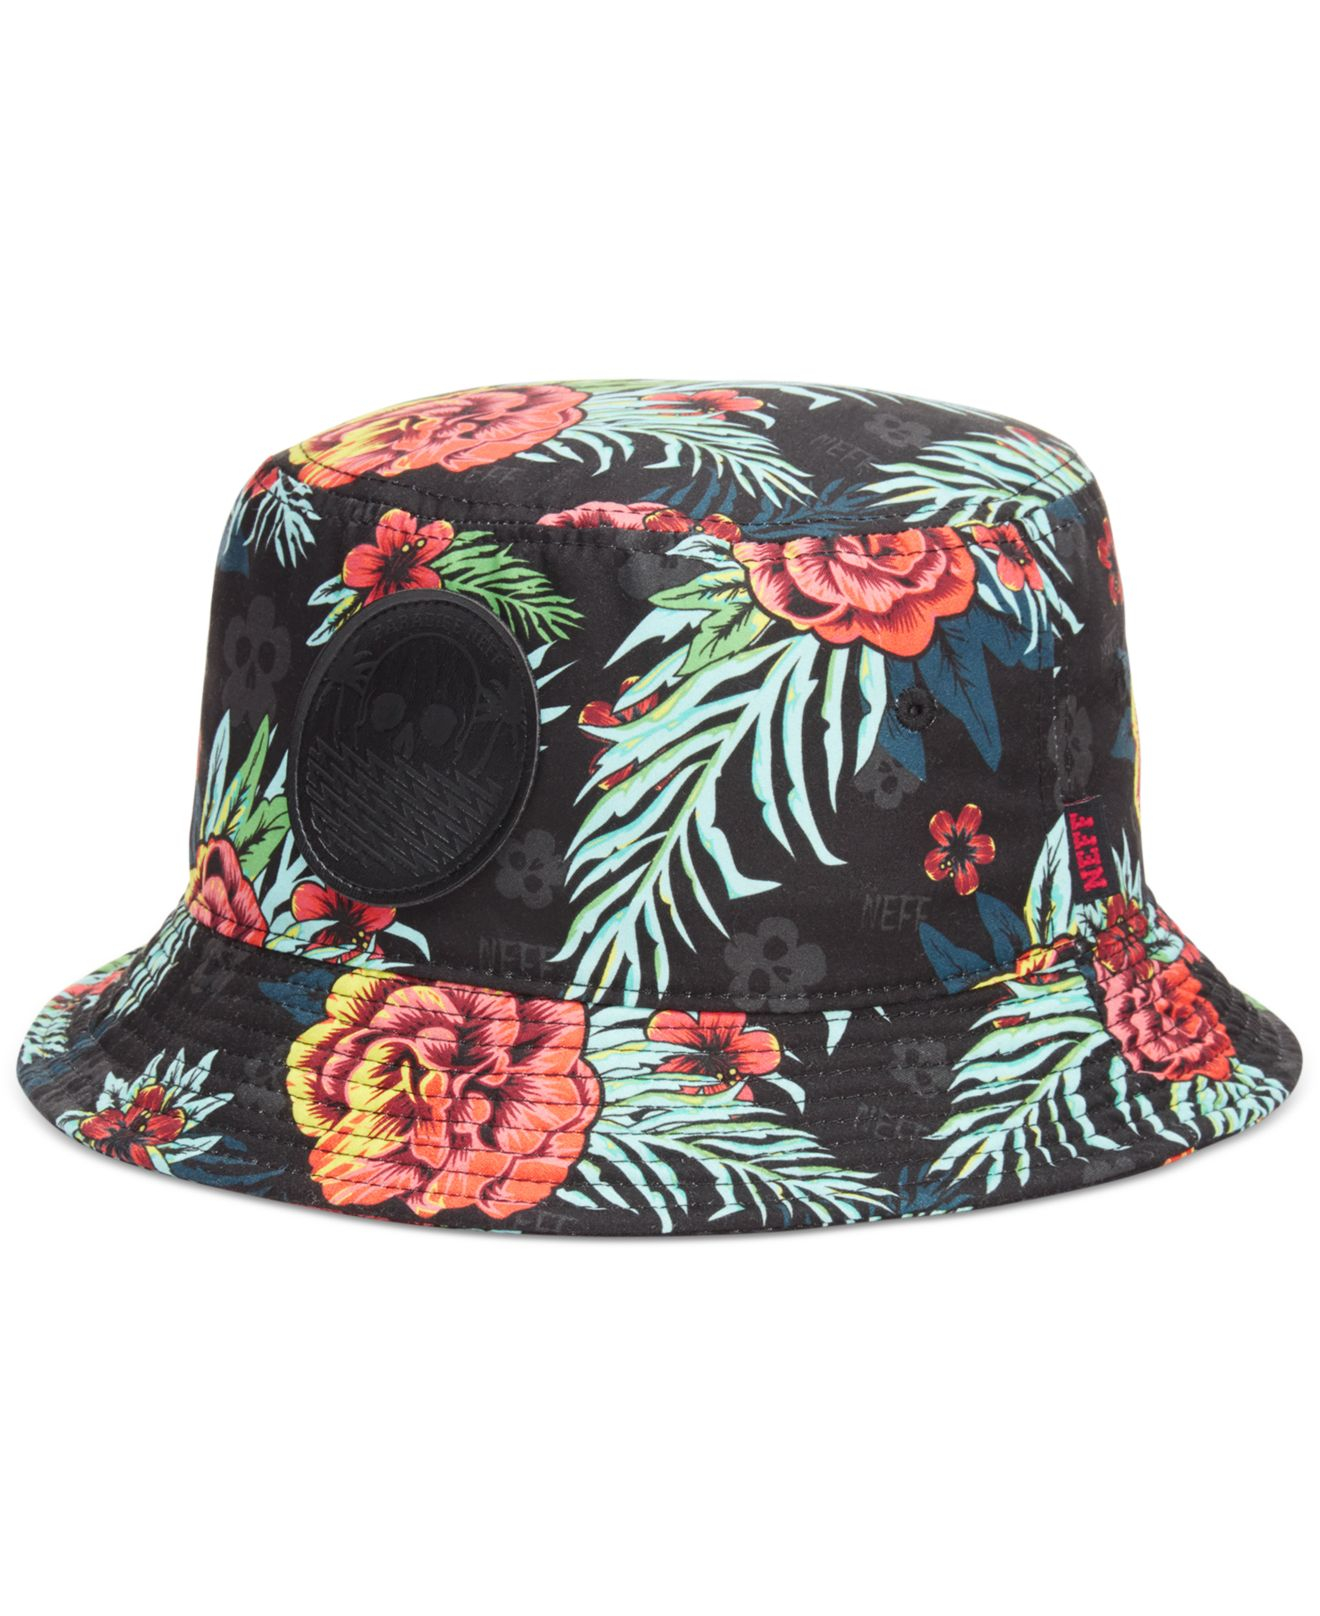 099e8ec62262 ... official store lyst neff astro bucket hat in black for men 95744 5d3fc  ...